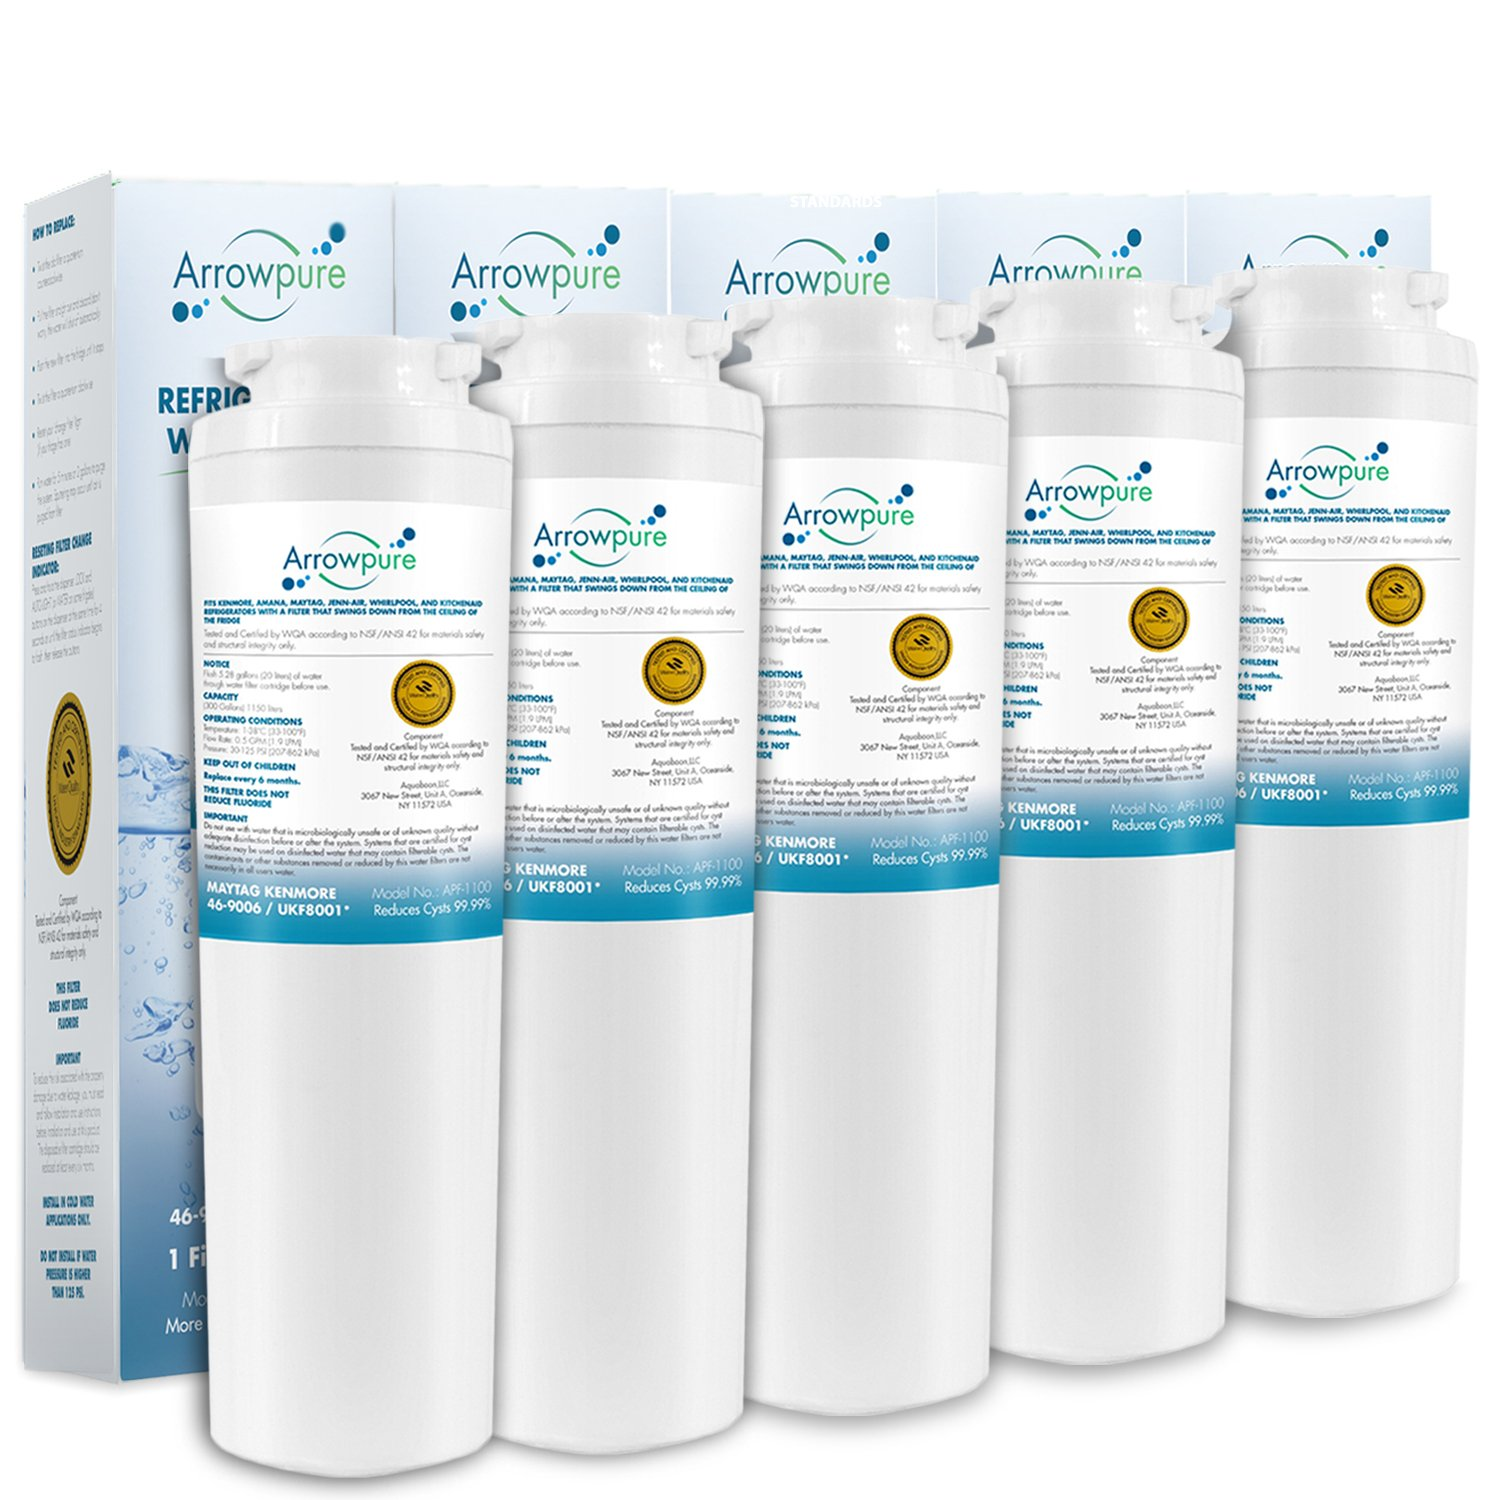 5 Pack Refrigerator Water Filter Replacement by Arrowpure | Certified According to NSF 42&372 | Compatible with Maytag UKF8001, UKF8001AXX, UKF8001P, EDR4RXD1, 4396395, Puriclean II, Kenmore